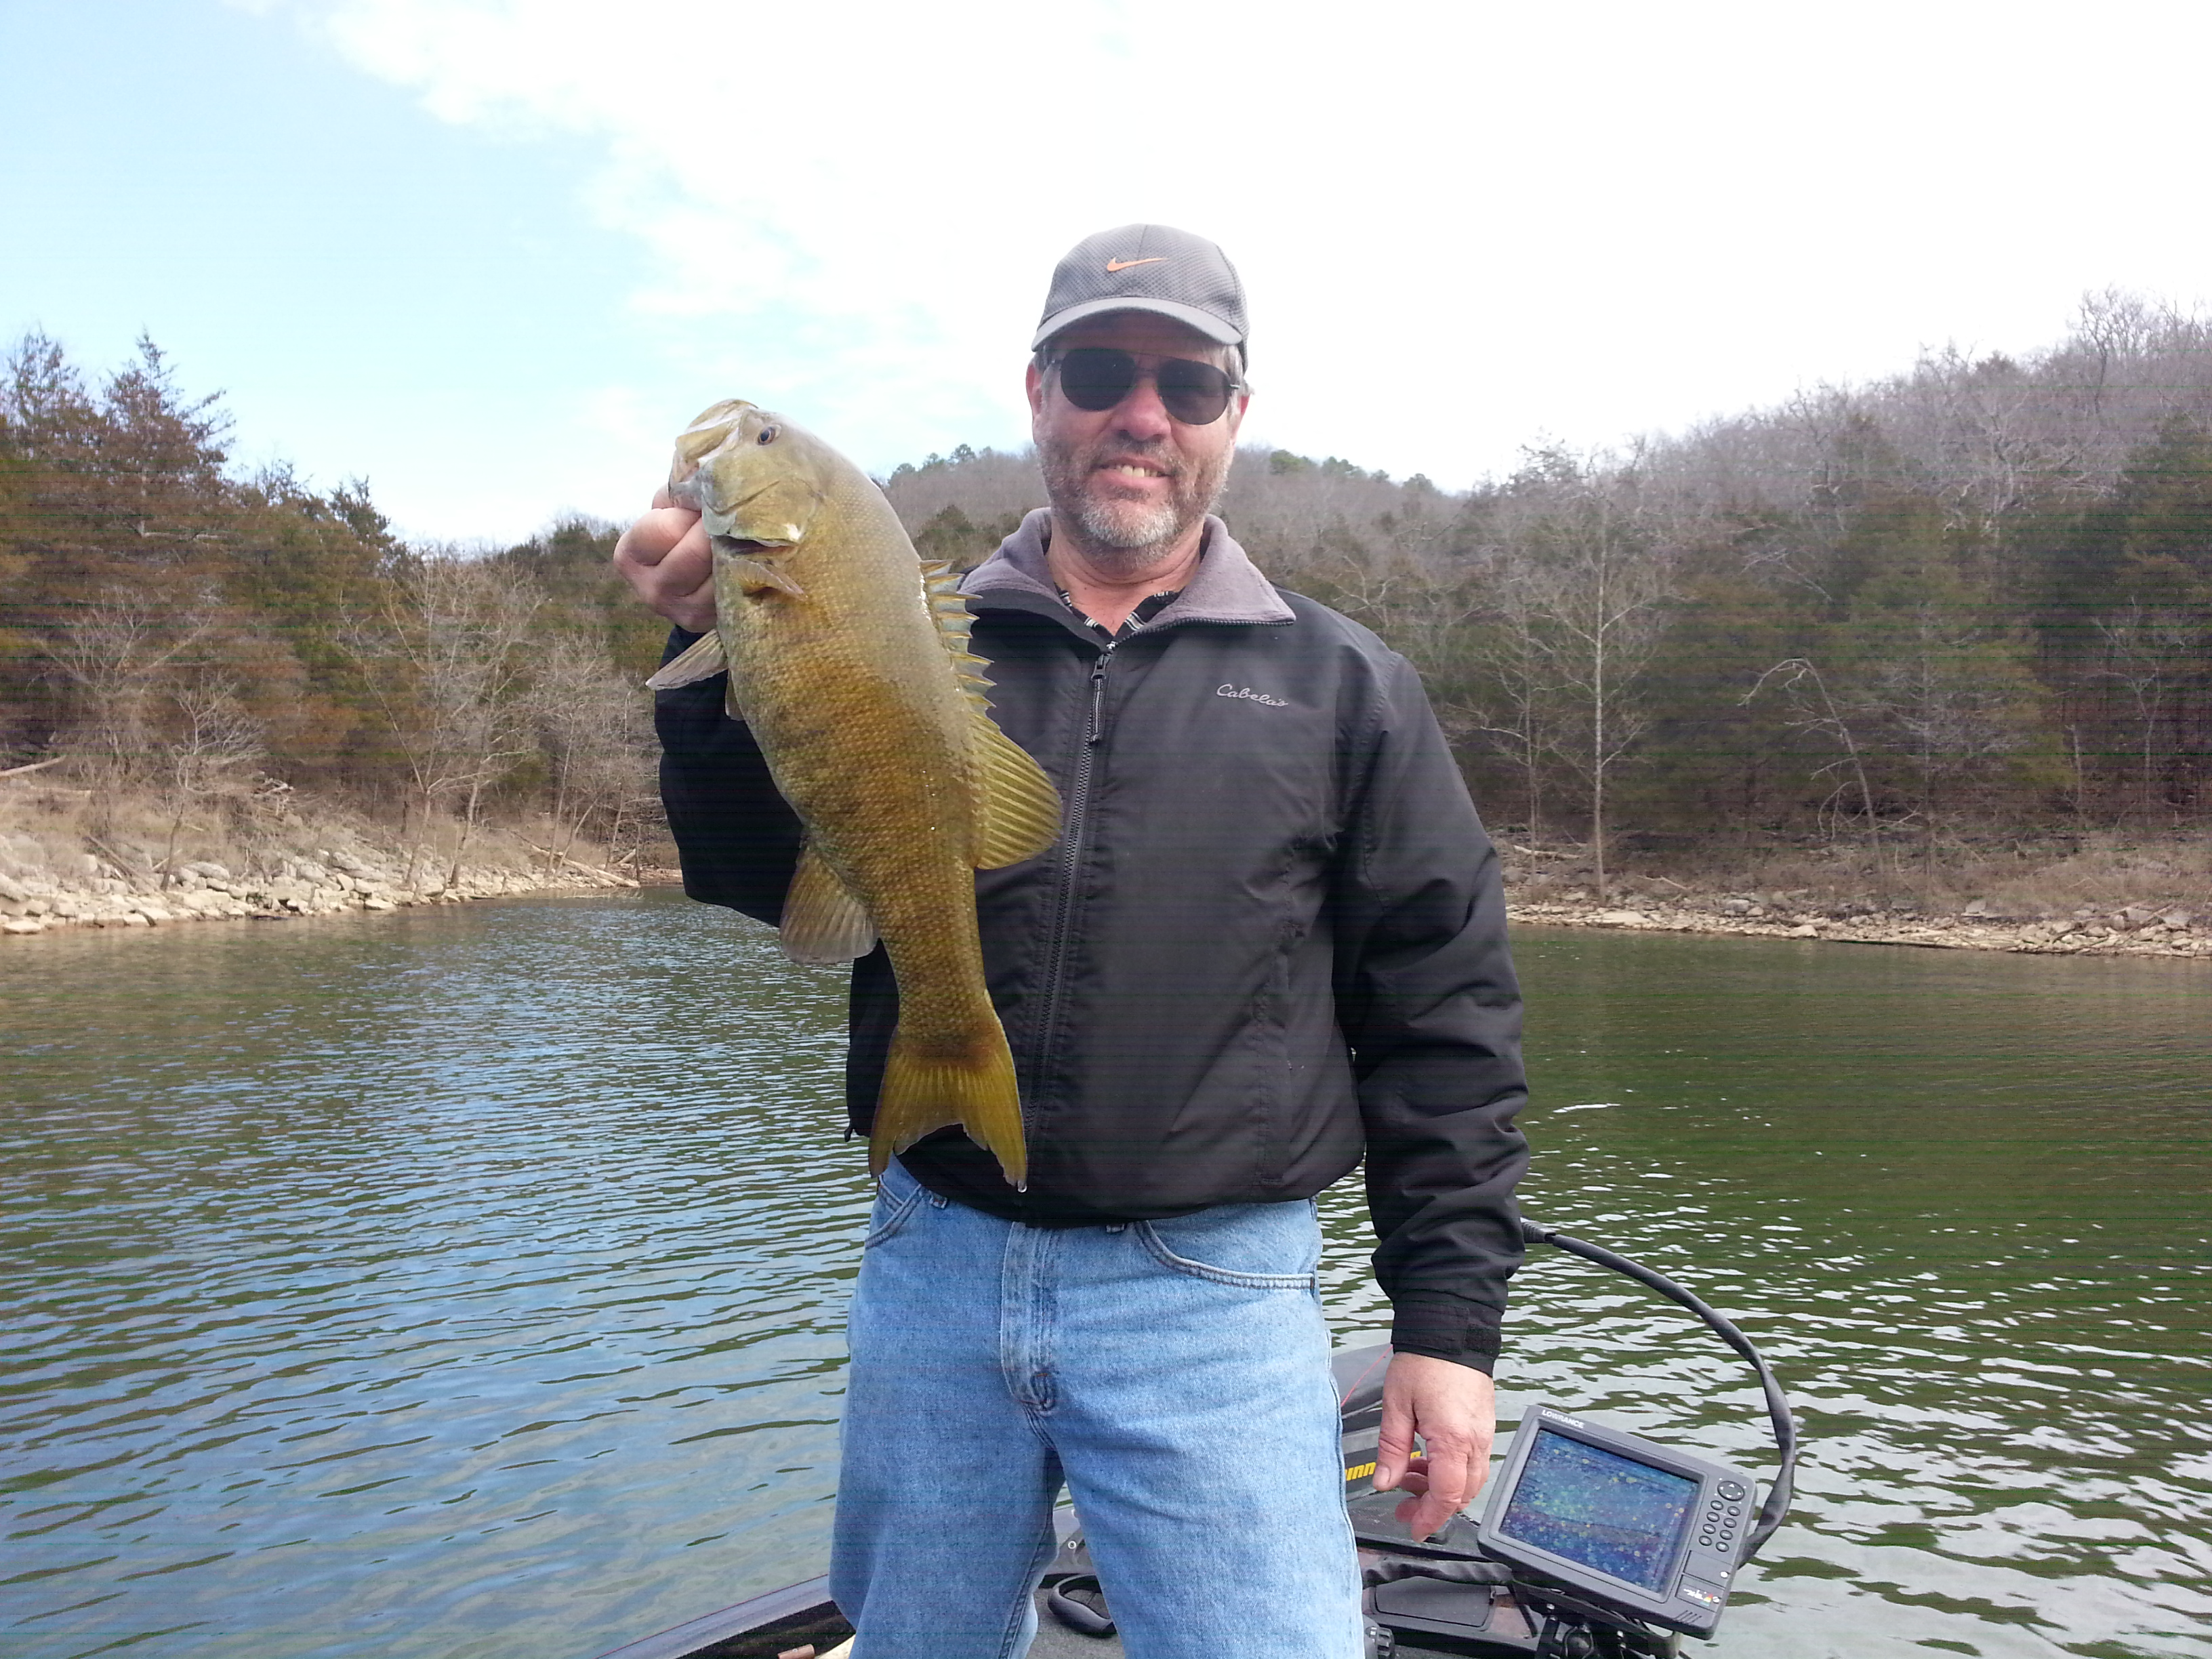 Branson fishing guide table rock lake video report for Table rock lake fishing guide